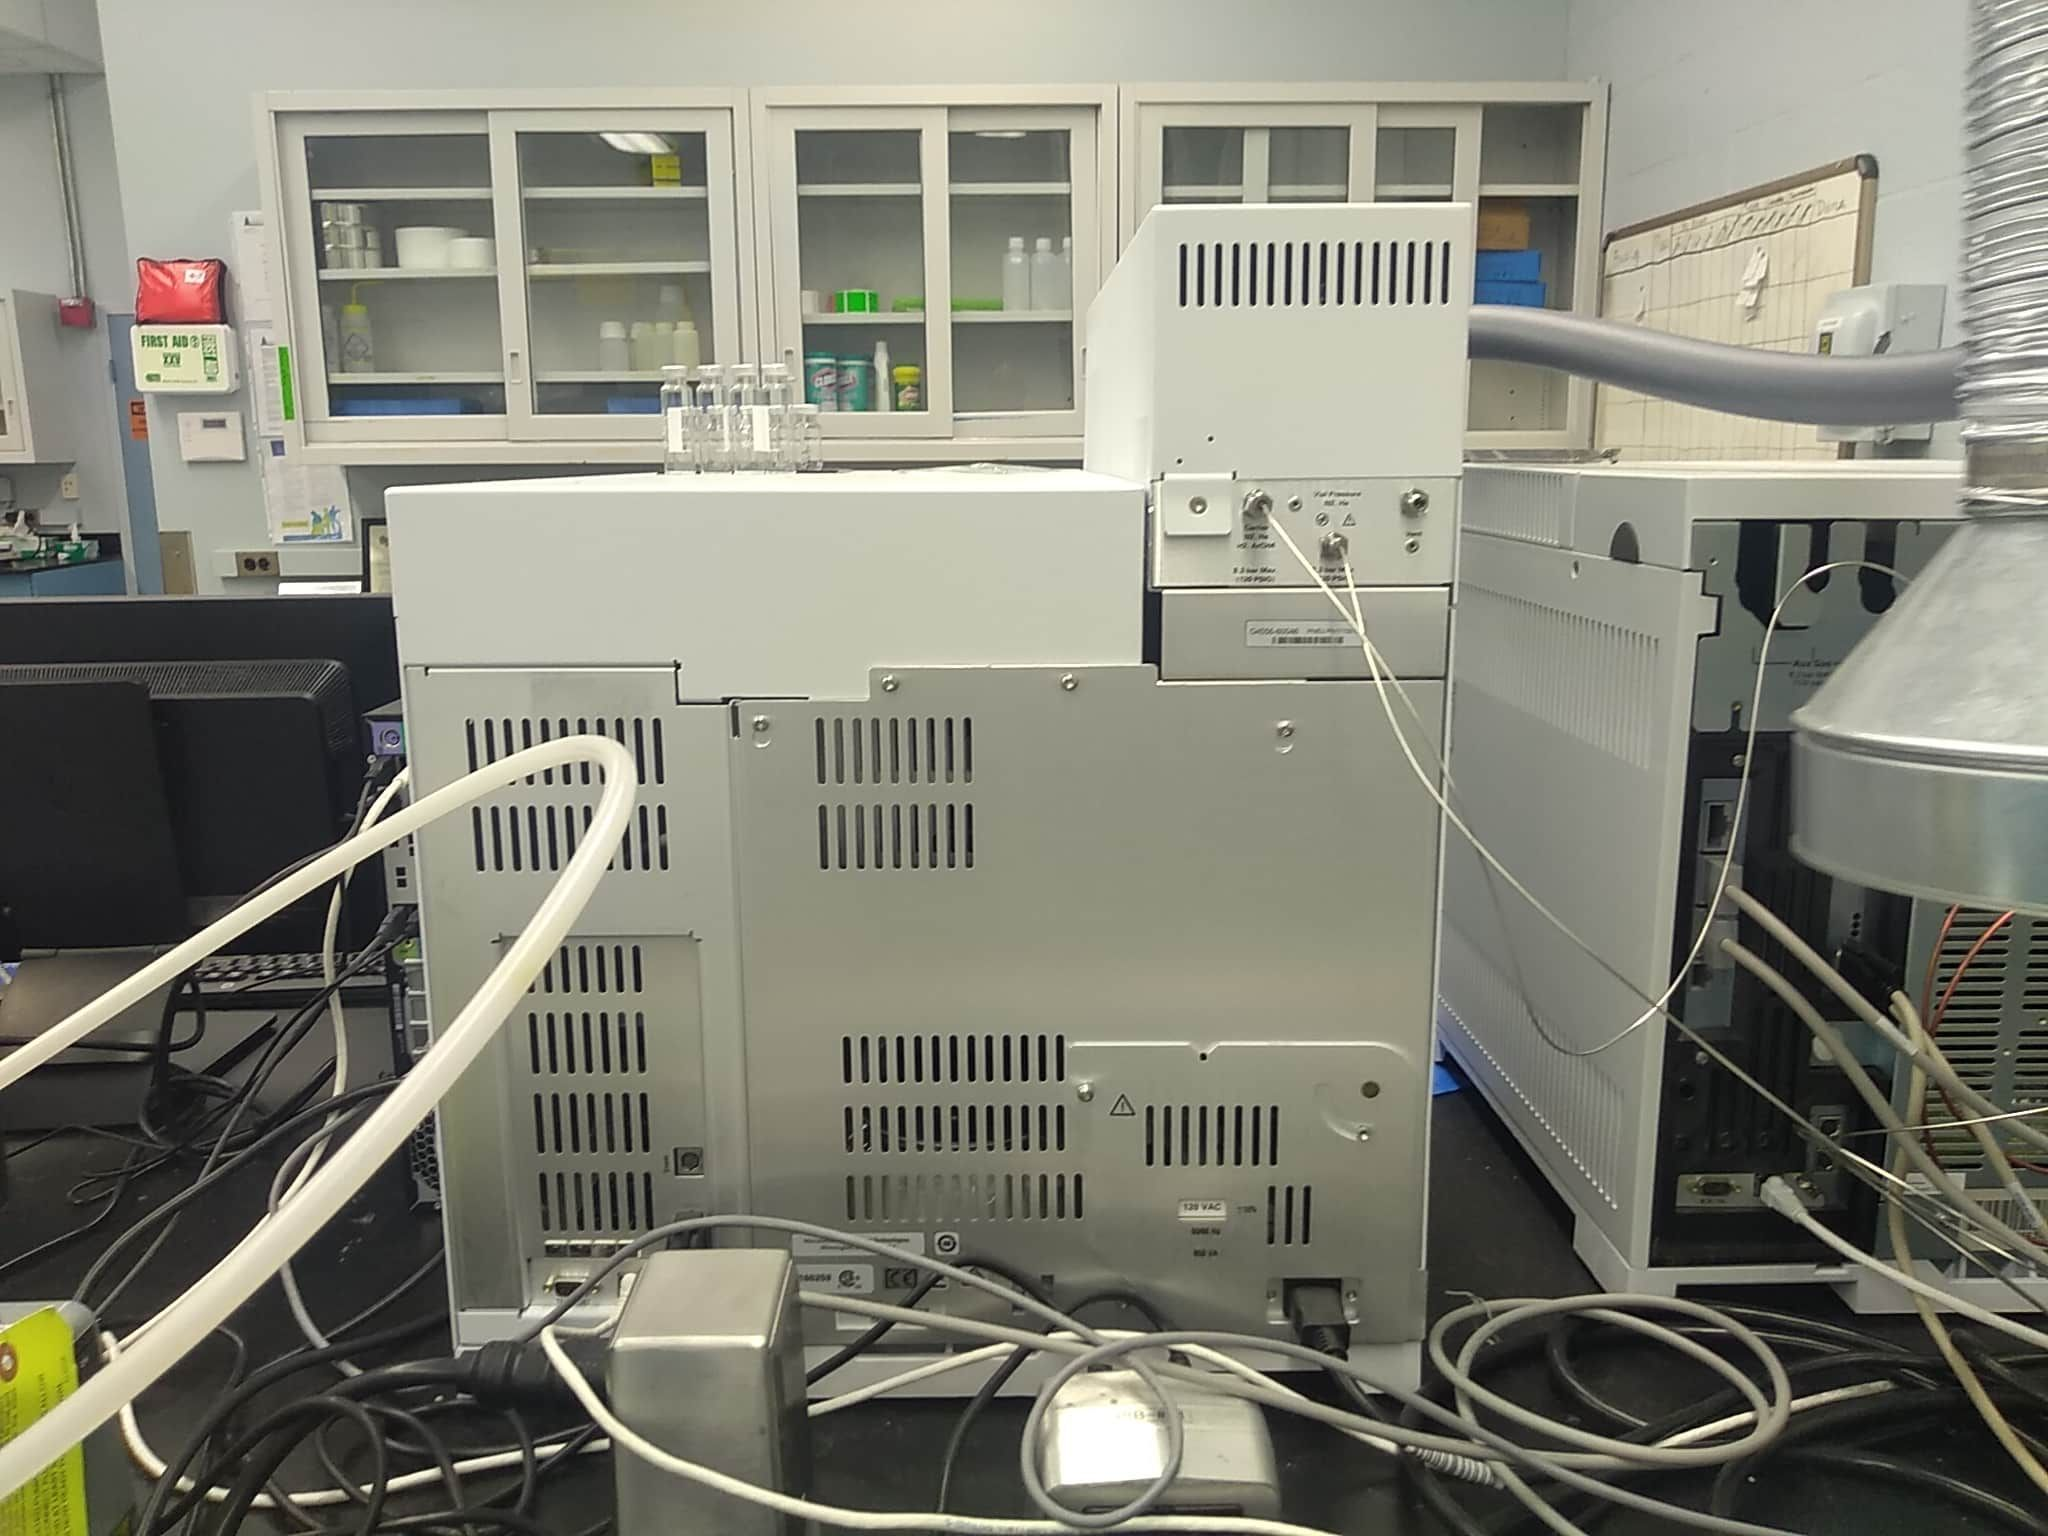 Agilent 5977A MS, 7890B GC w/ 7697A Headspace analyzer, Complete system